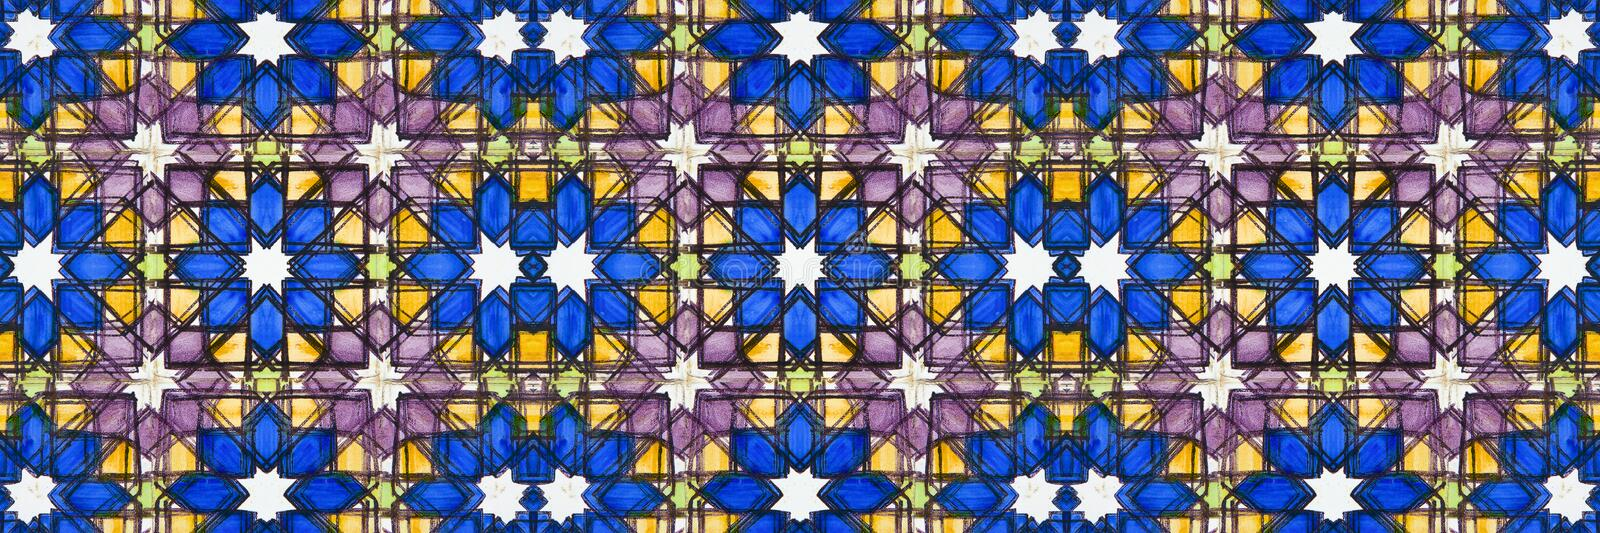 Abstract composition inspired by a typical portuguese decorations with ceramic tiles called azulejos - Perfect seamless texture. That can be repeated modularly stock photo